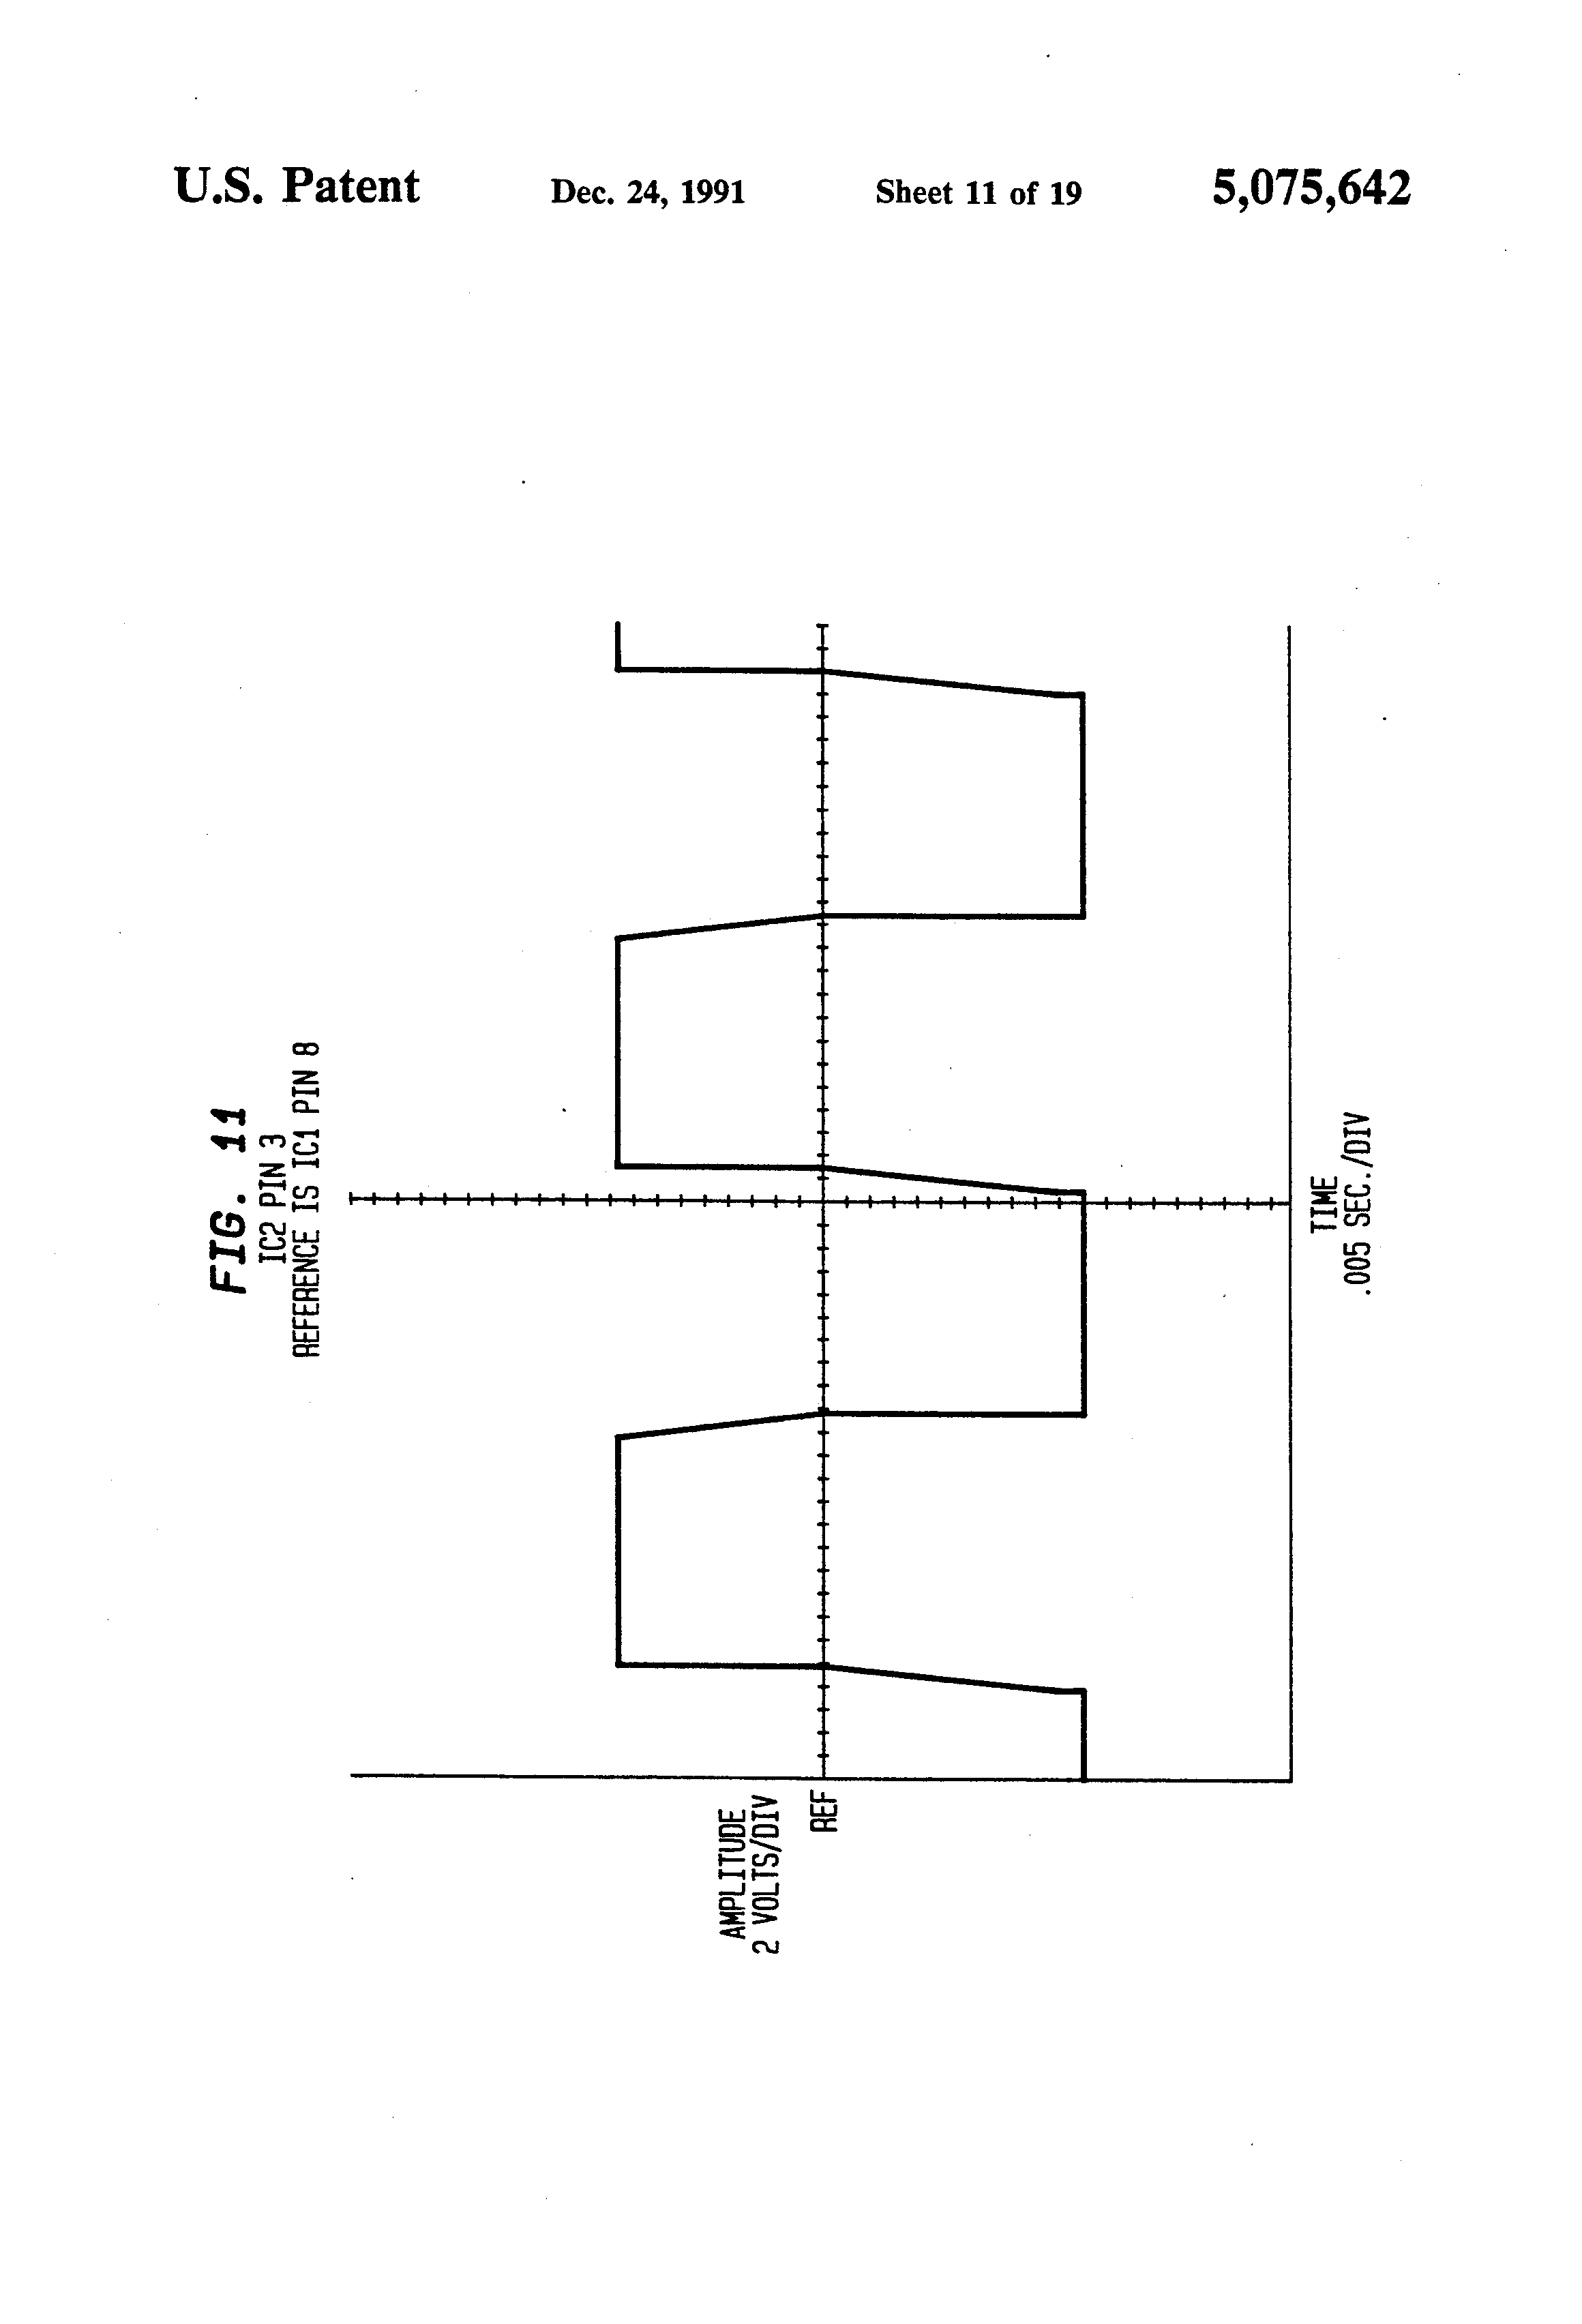 Patent Us5075642 Oscillator Circuit Google Patents Pujt Voltage Comparator Power On Delay Circuits Drawing